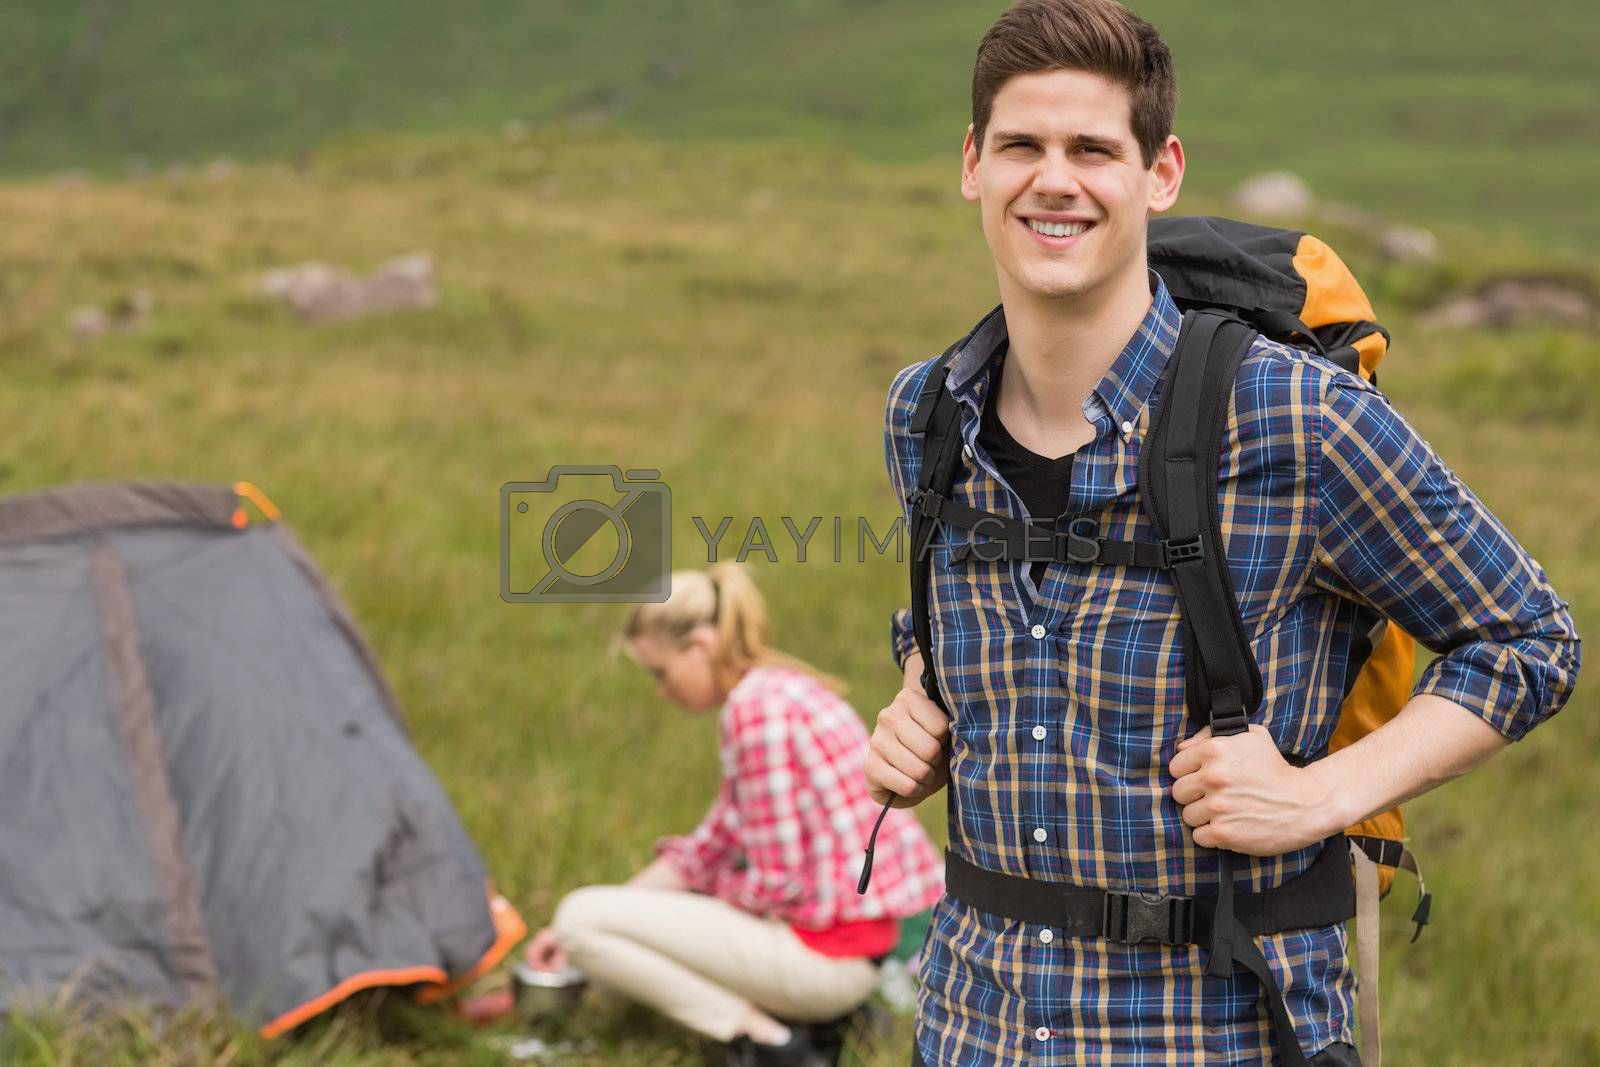 Cheerful man carrying backpack while girlfriend is pitching tent by Wavebreakmedia